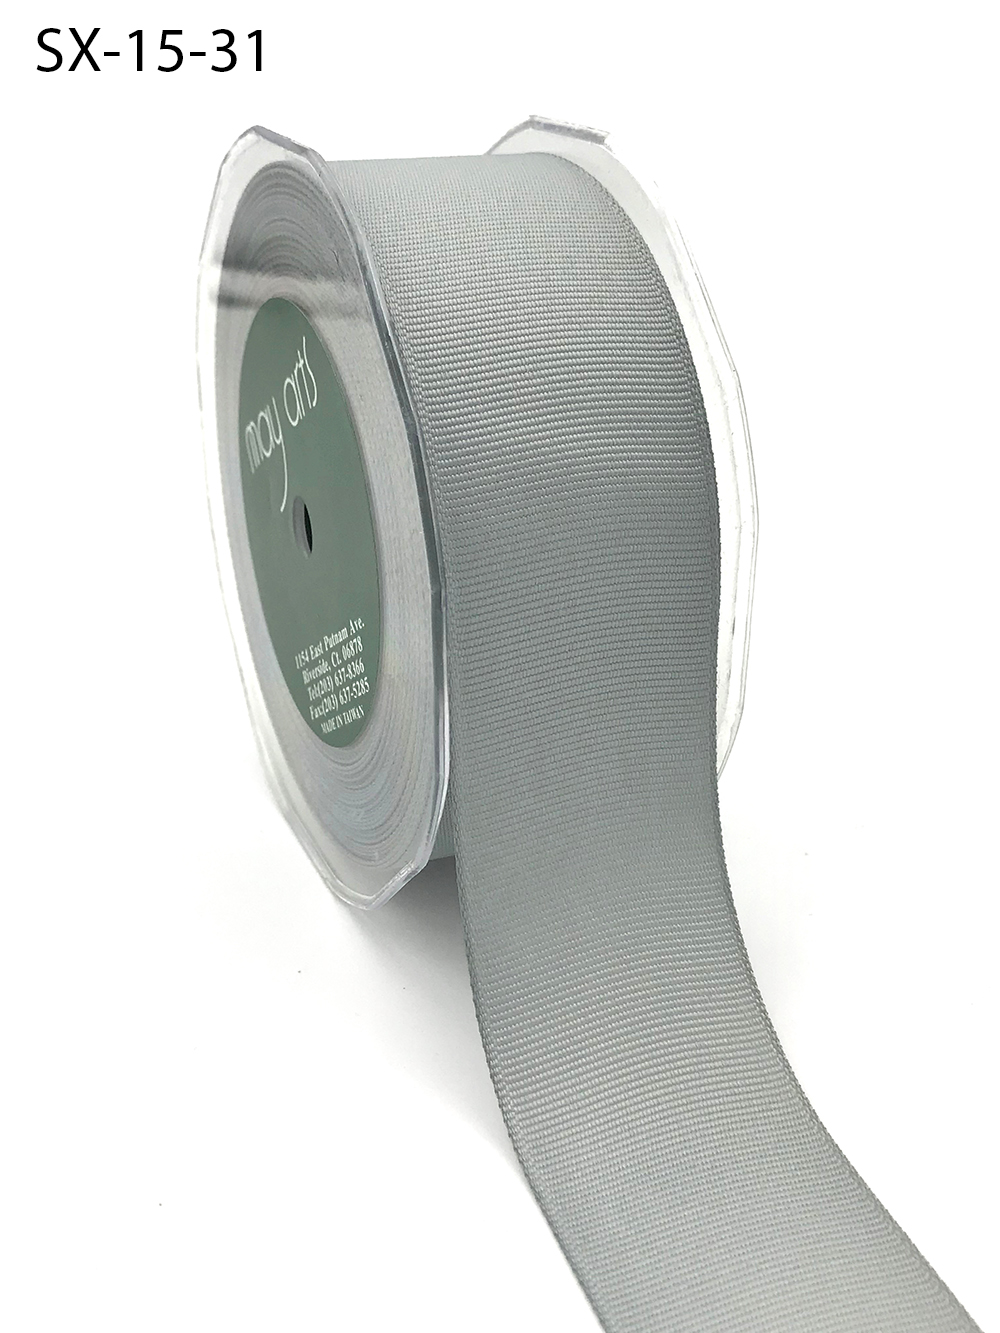 1.5 Inch Heavy-Weight (higher thread count) Classic Grosgrain Ribbon with Woven Edge - SX-15-31 Silver